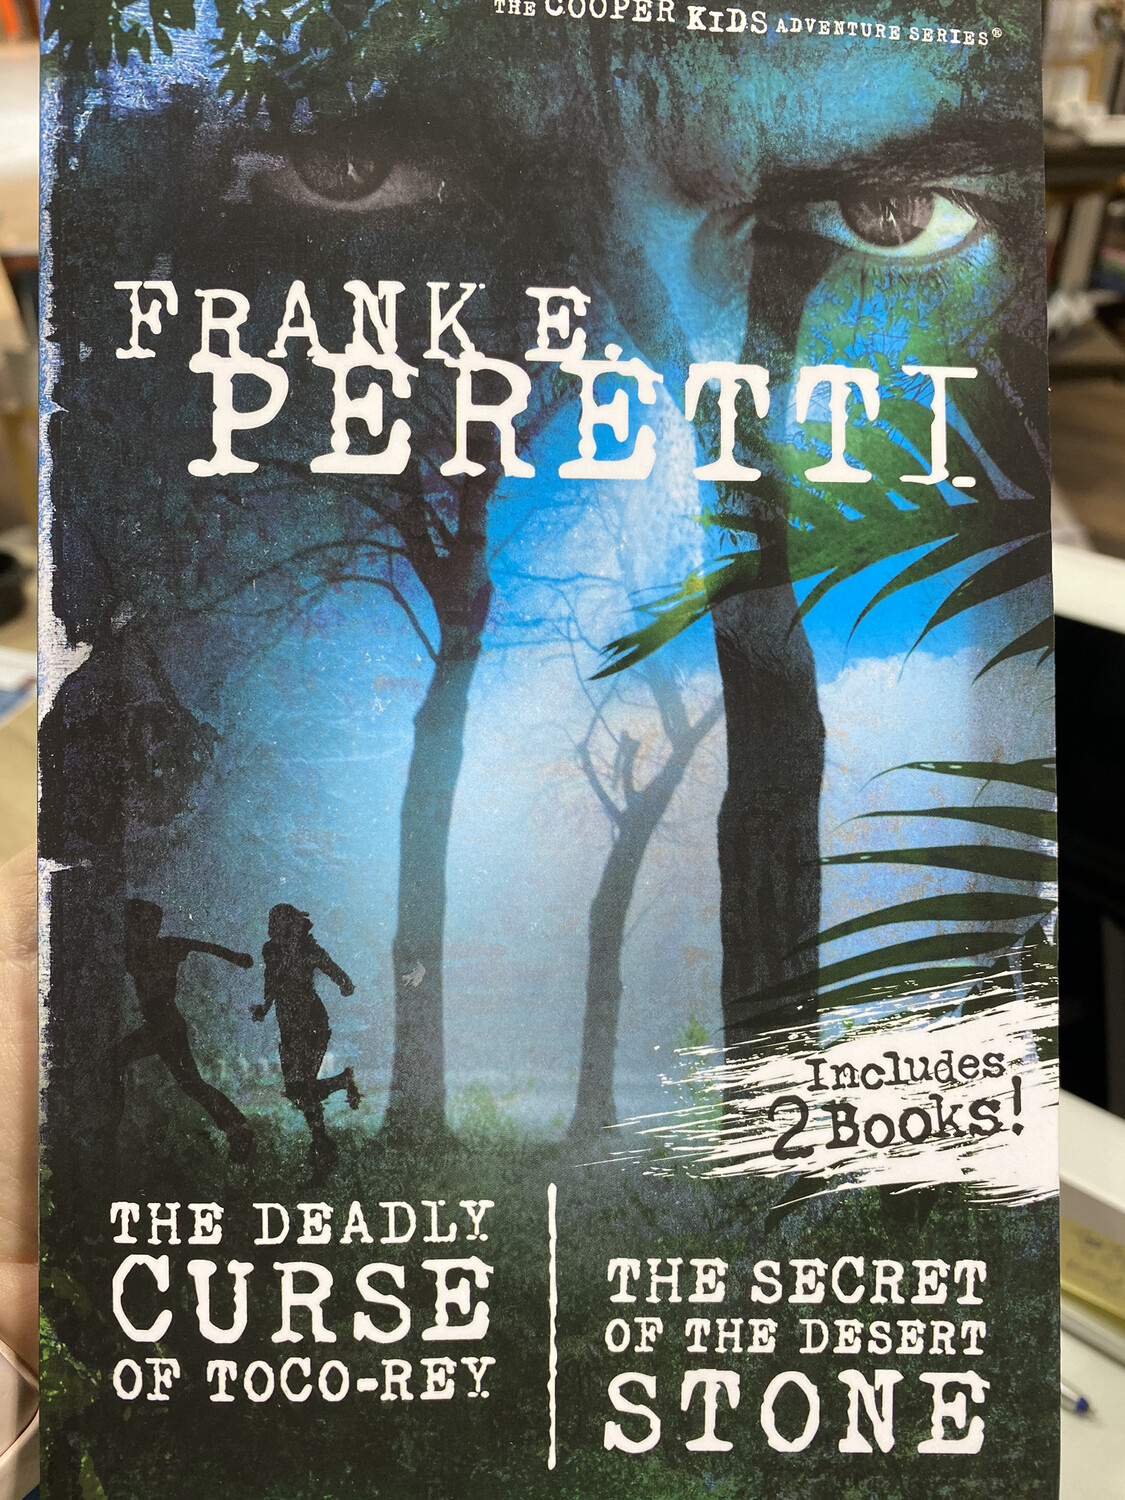 PERETTI, The Deadly Curse Of Toco-Rey/The Secret Of The Desert Stone